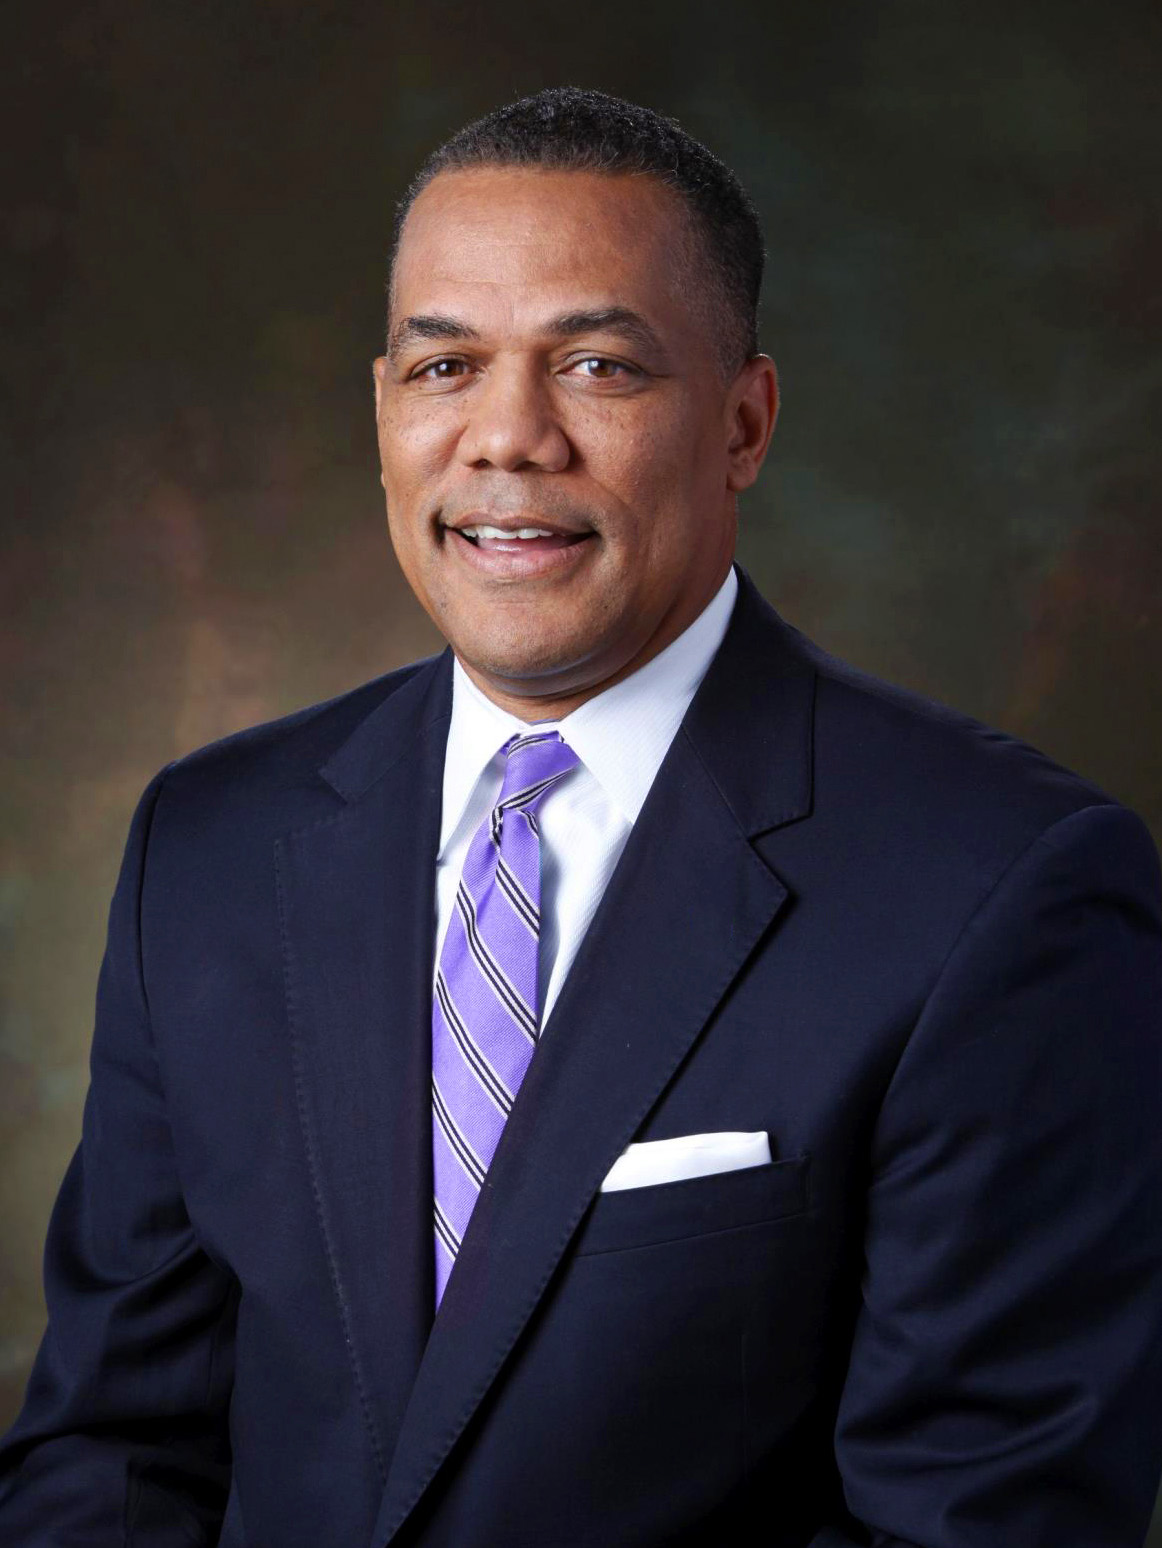 Anthony Washington - Co-founder, CEOWith over 30 years of experience as an executive in the insurance industry with the companies Nationwide, Western Heritage, Allied, Chubb, and other family-owned businesses, he saw the gap in the small business insurance market. Anthony created RaisinBread to help small businesses stay protected with insurance that is tailored to meet their needs.